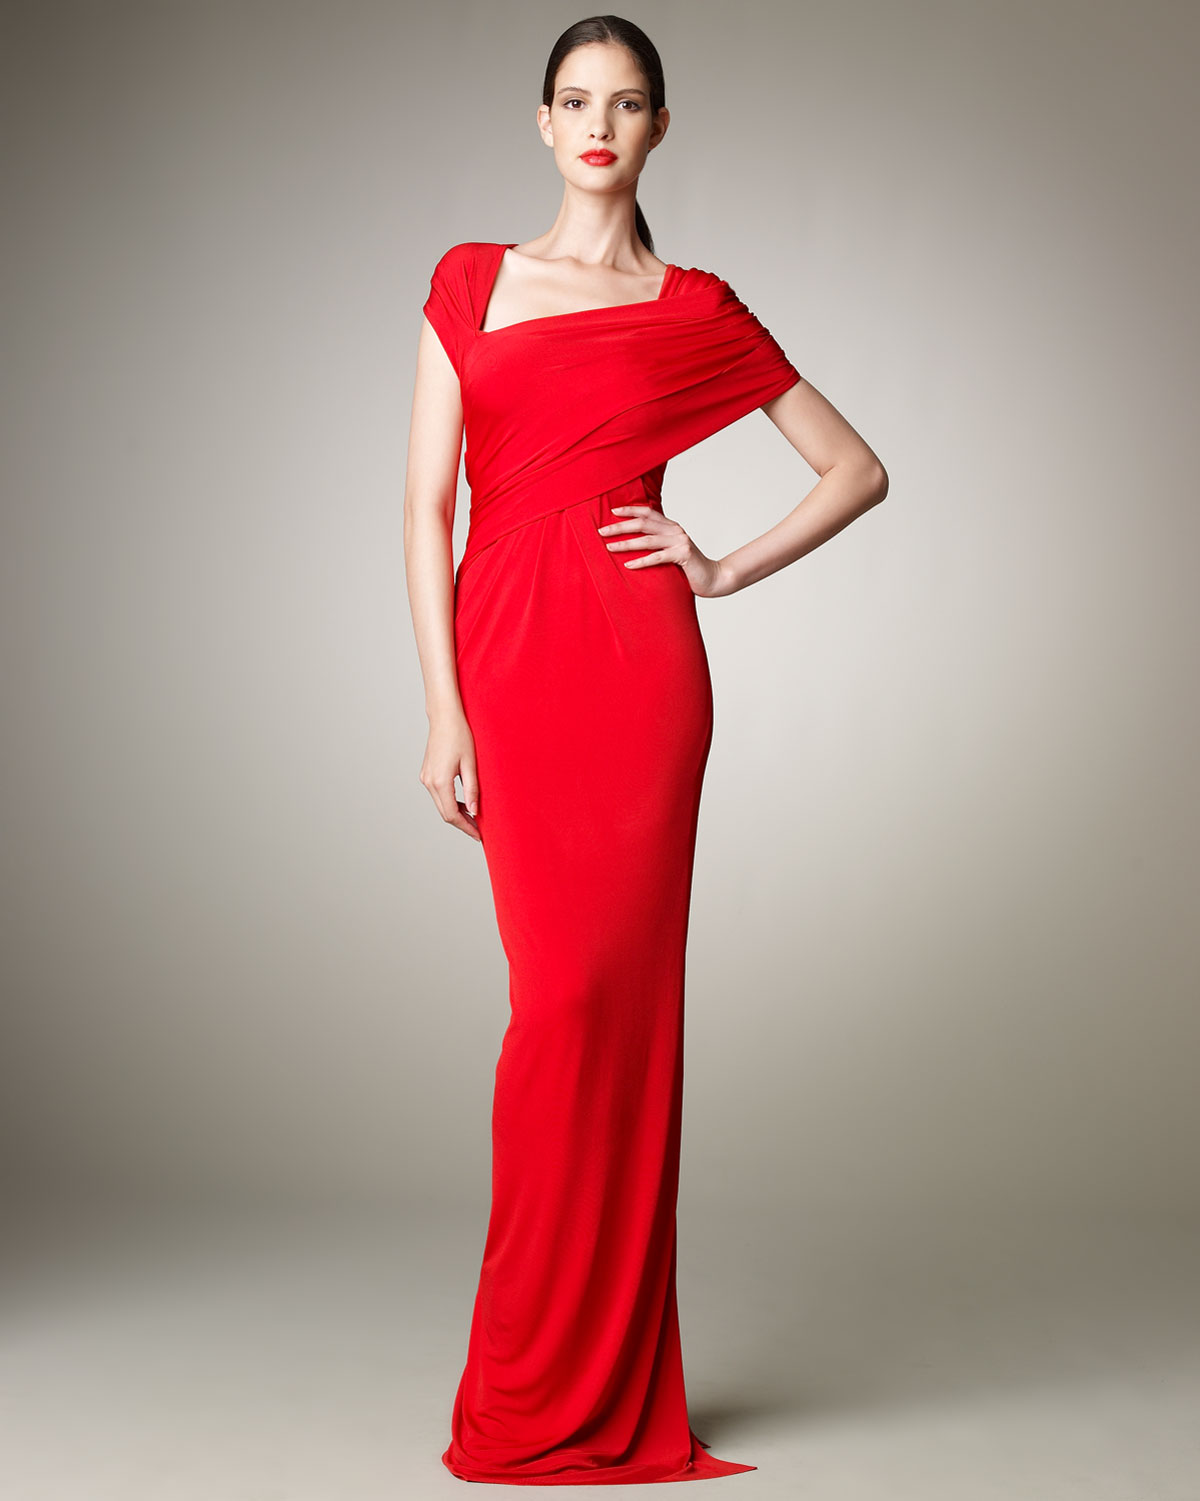 Lyst - Donna karan Wrapped Jersey Gown in Red